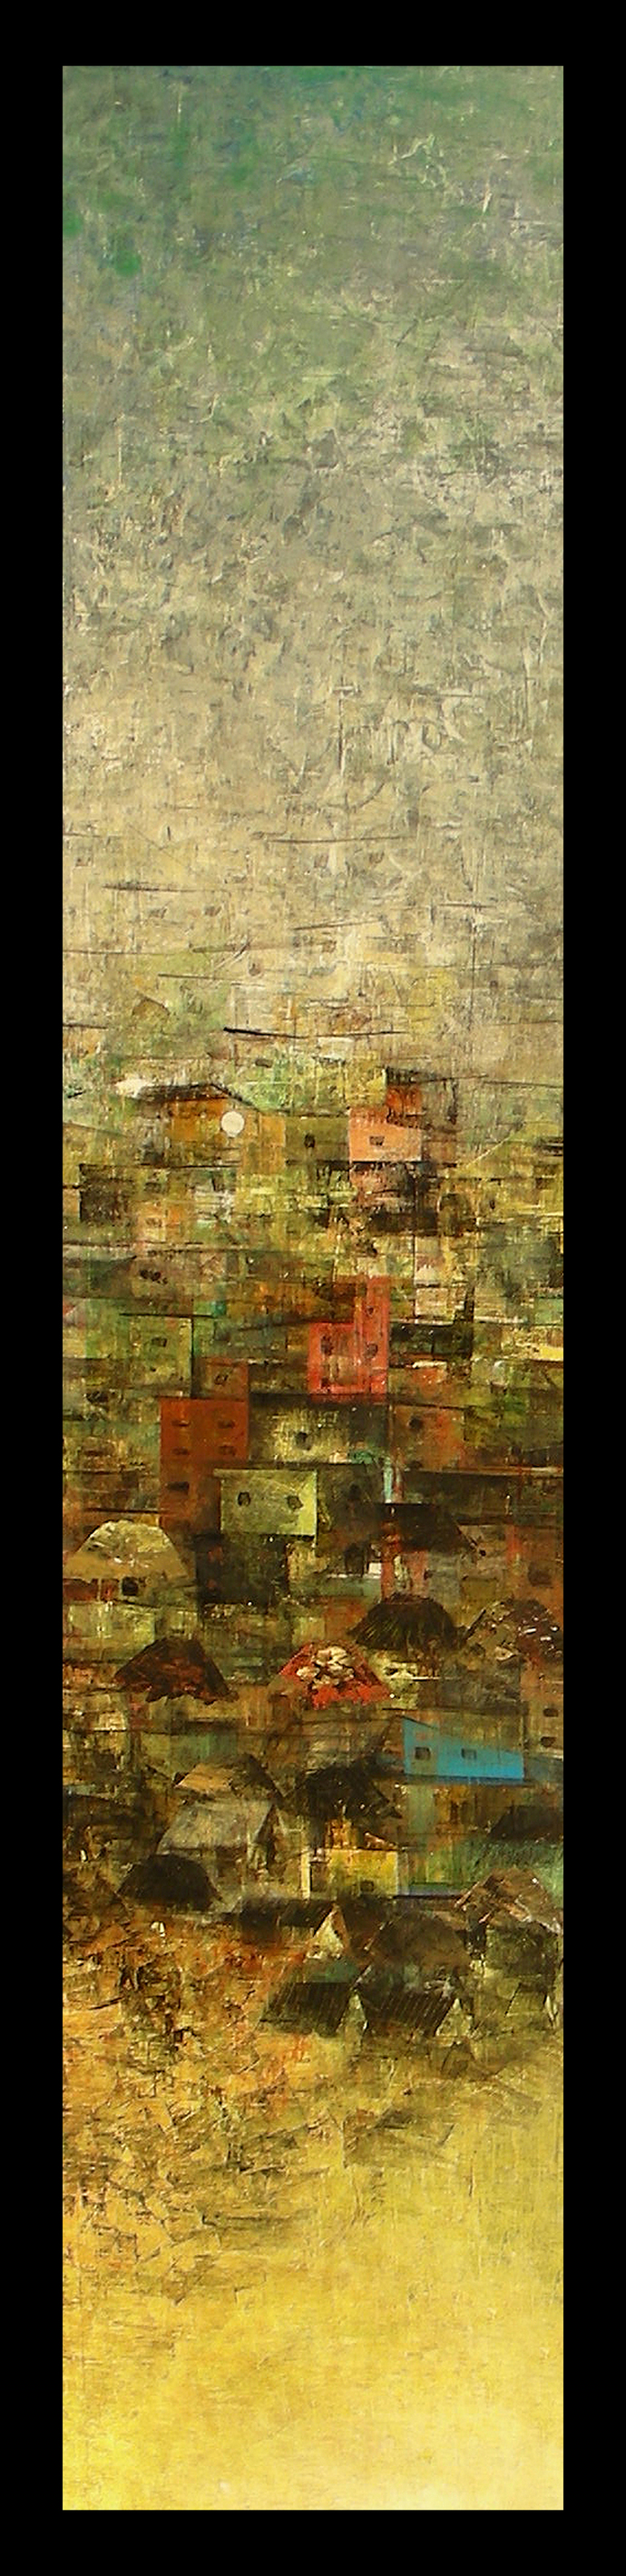 A glimpse of village_II by M Singh, Impressionism Painting, Acrylic on Canvas, Beige color